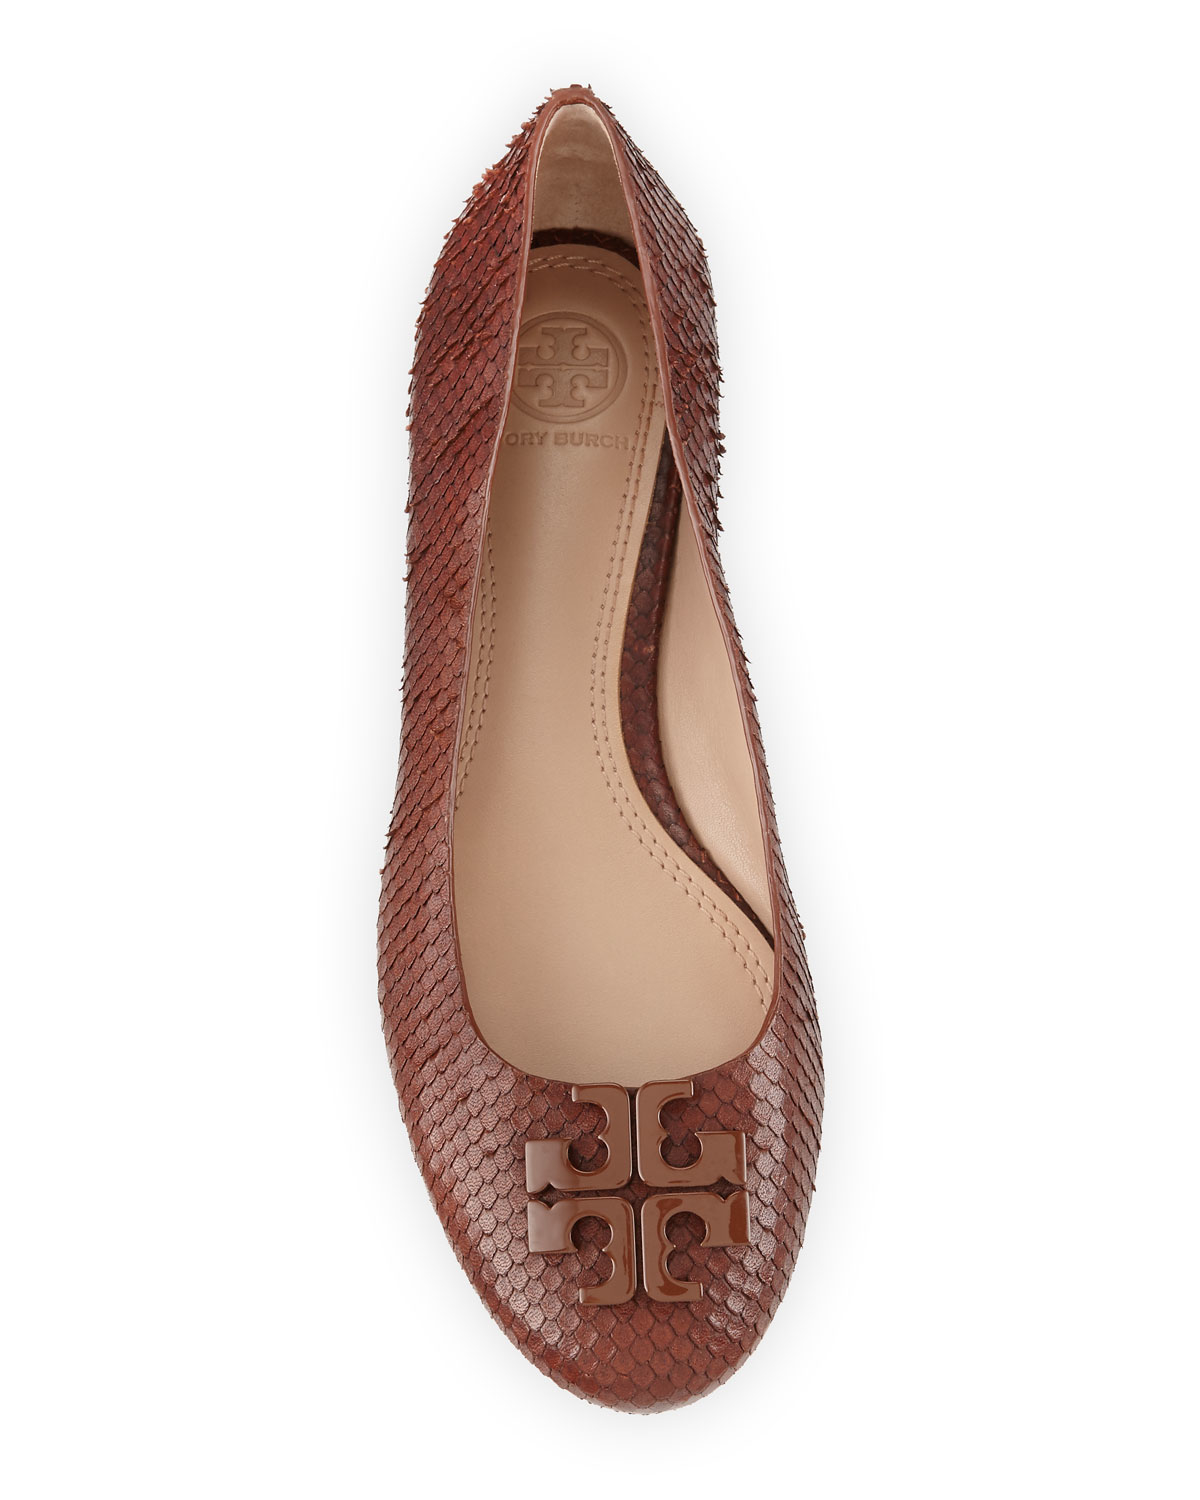 9b953db266e2 authentic lyst tory burch lowell 2 snake smbossed ballet flats in brown  11fcf 0e1ea